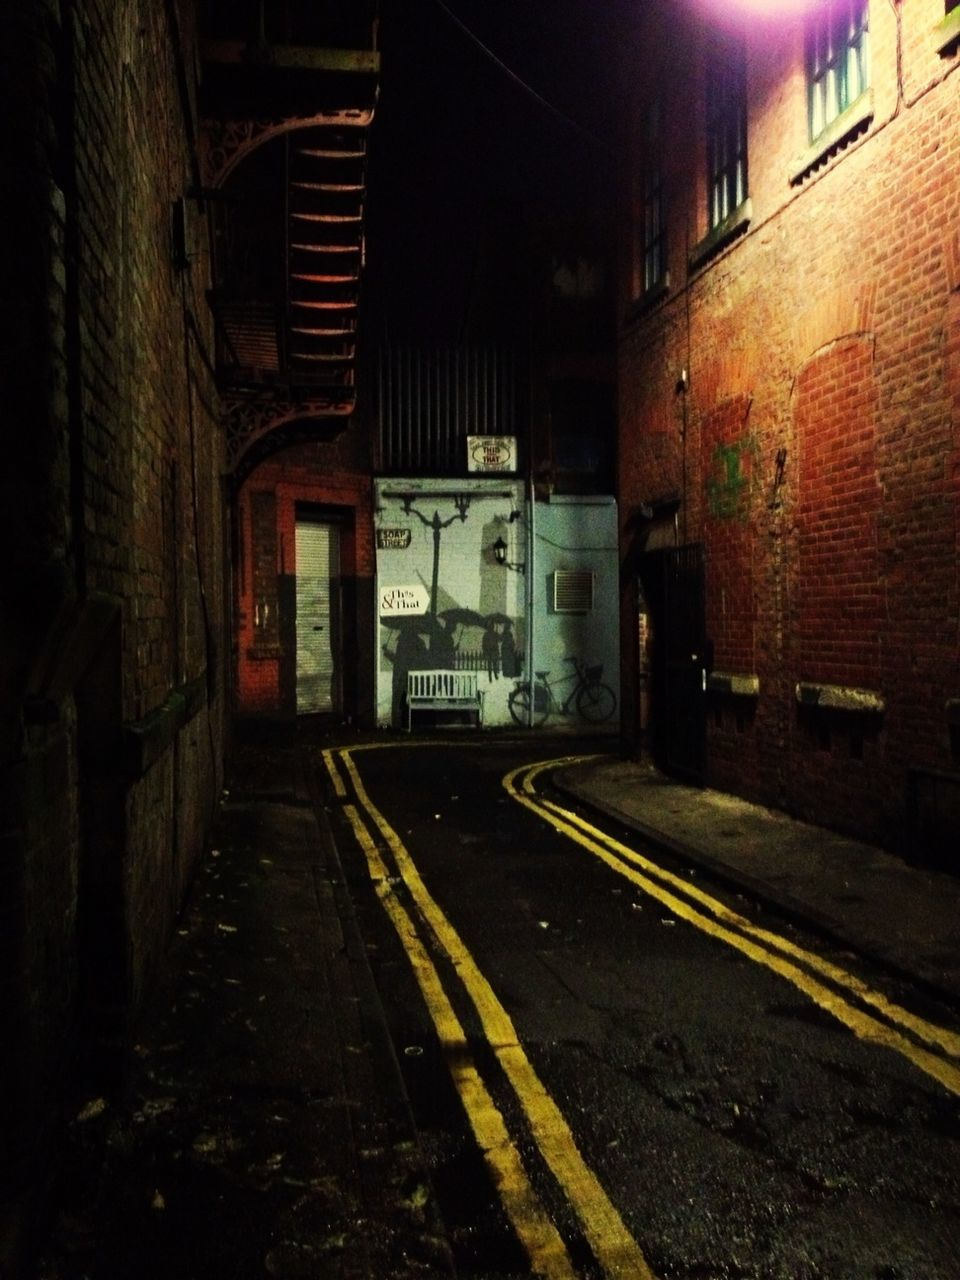 architecture, built structure, brick wall, illuminated, building exterior, no people, transportation, indoors, night